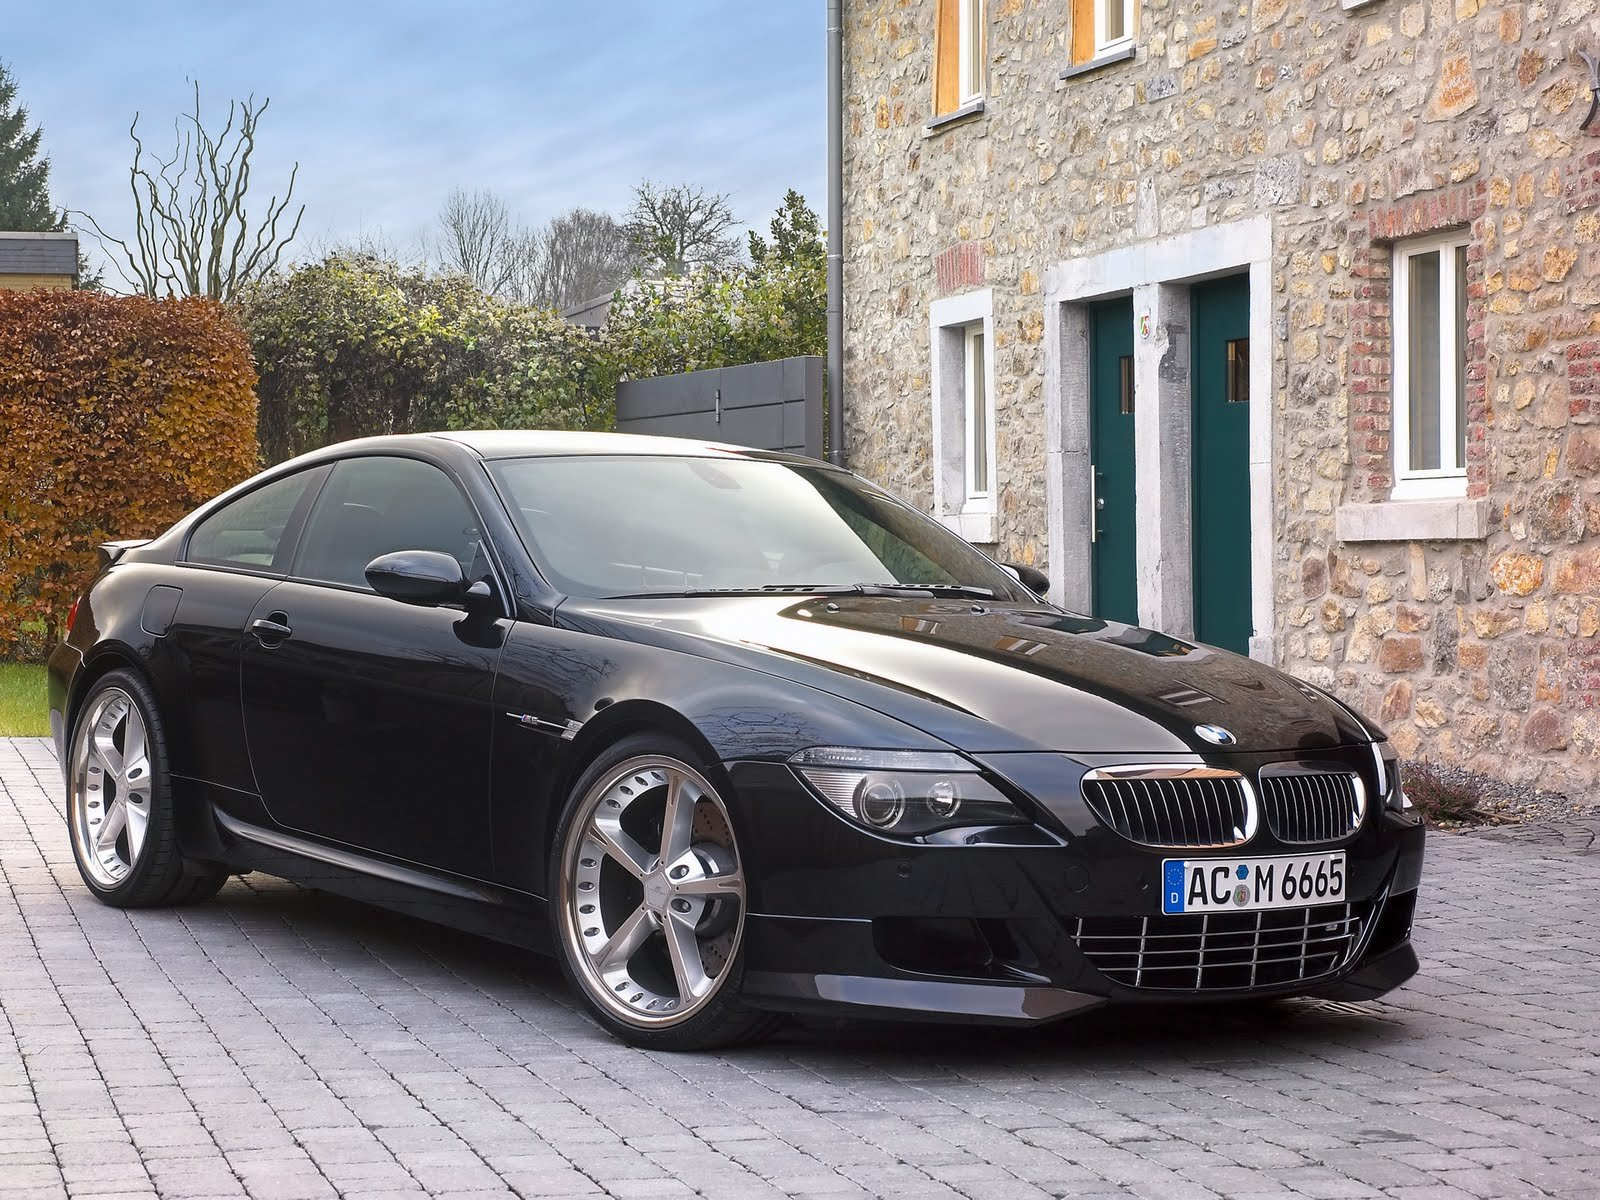 Latest Black Bmw Car Wallpaper Cars Wallpapers And Pictures Car Free Download